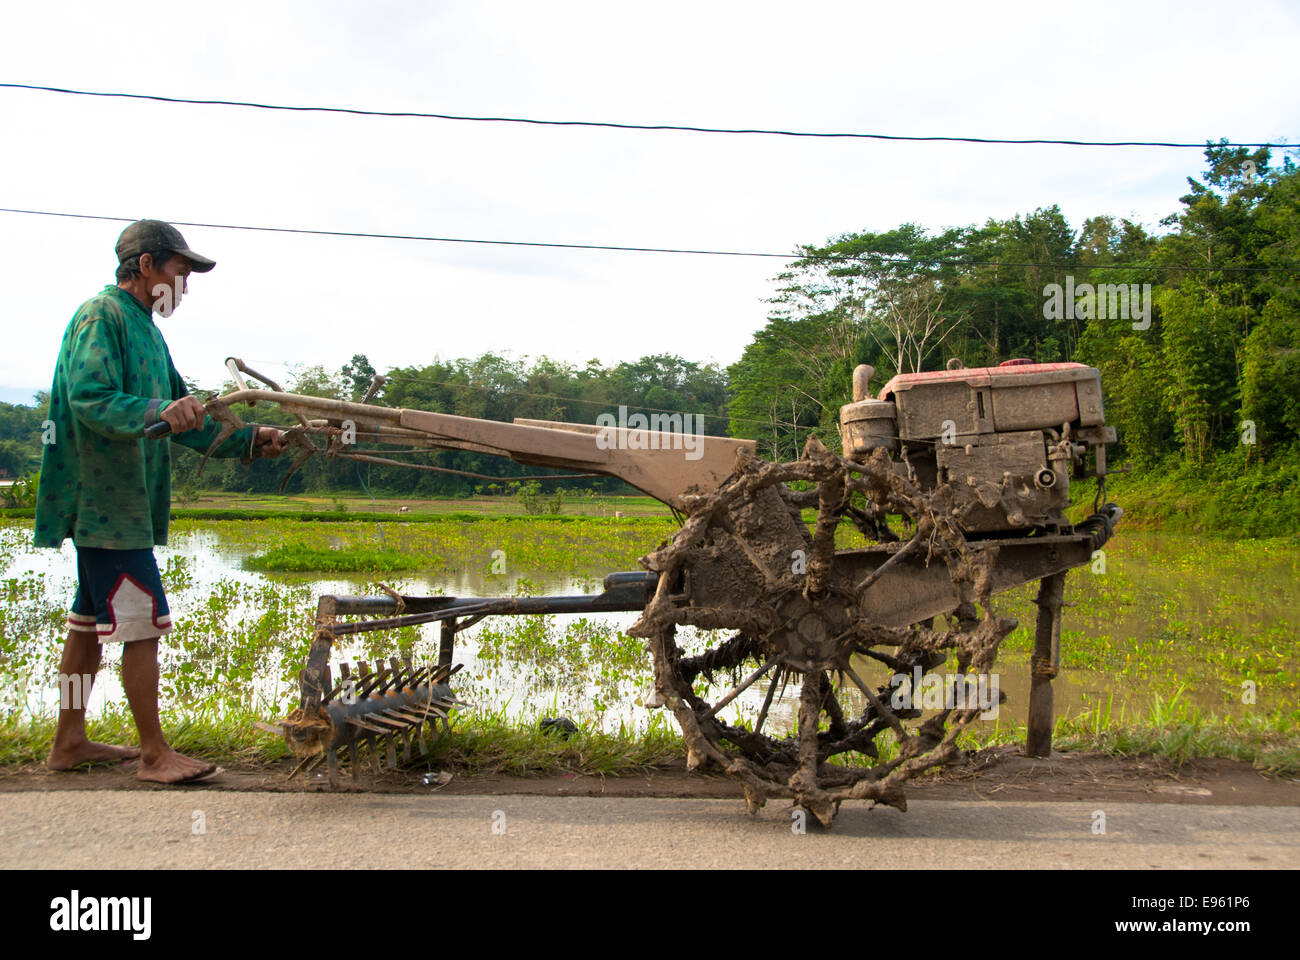 man with old plowing machine near paddy with rice - Stock Image